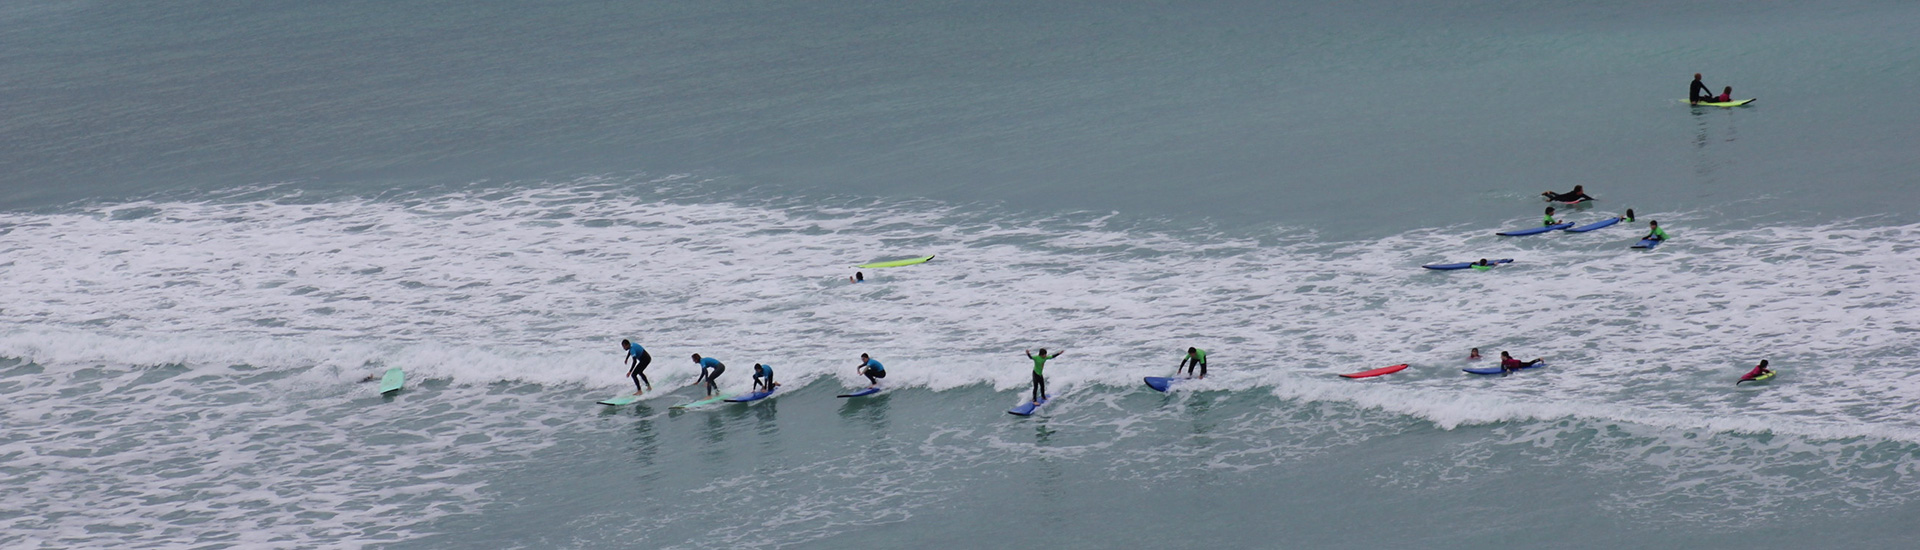 cours-collectifs-surf-biarritz-quiksilver